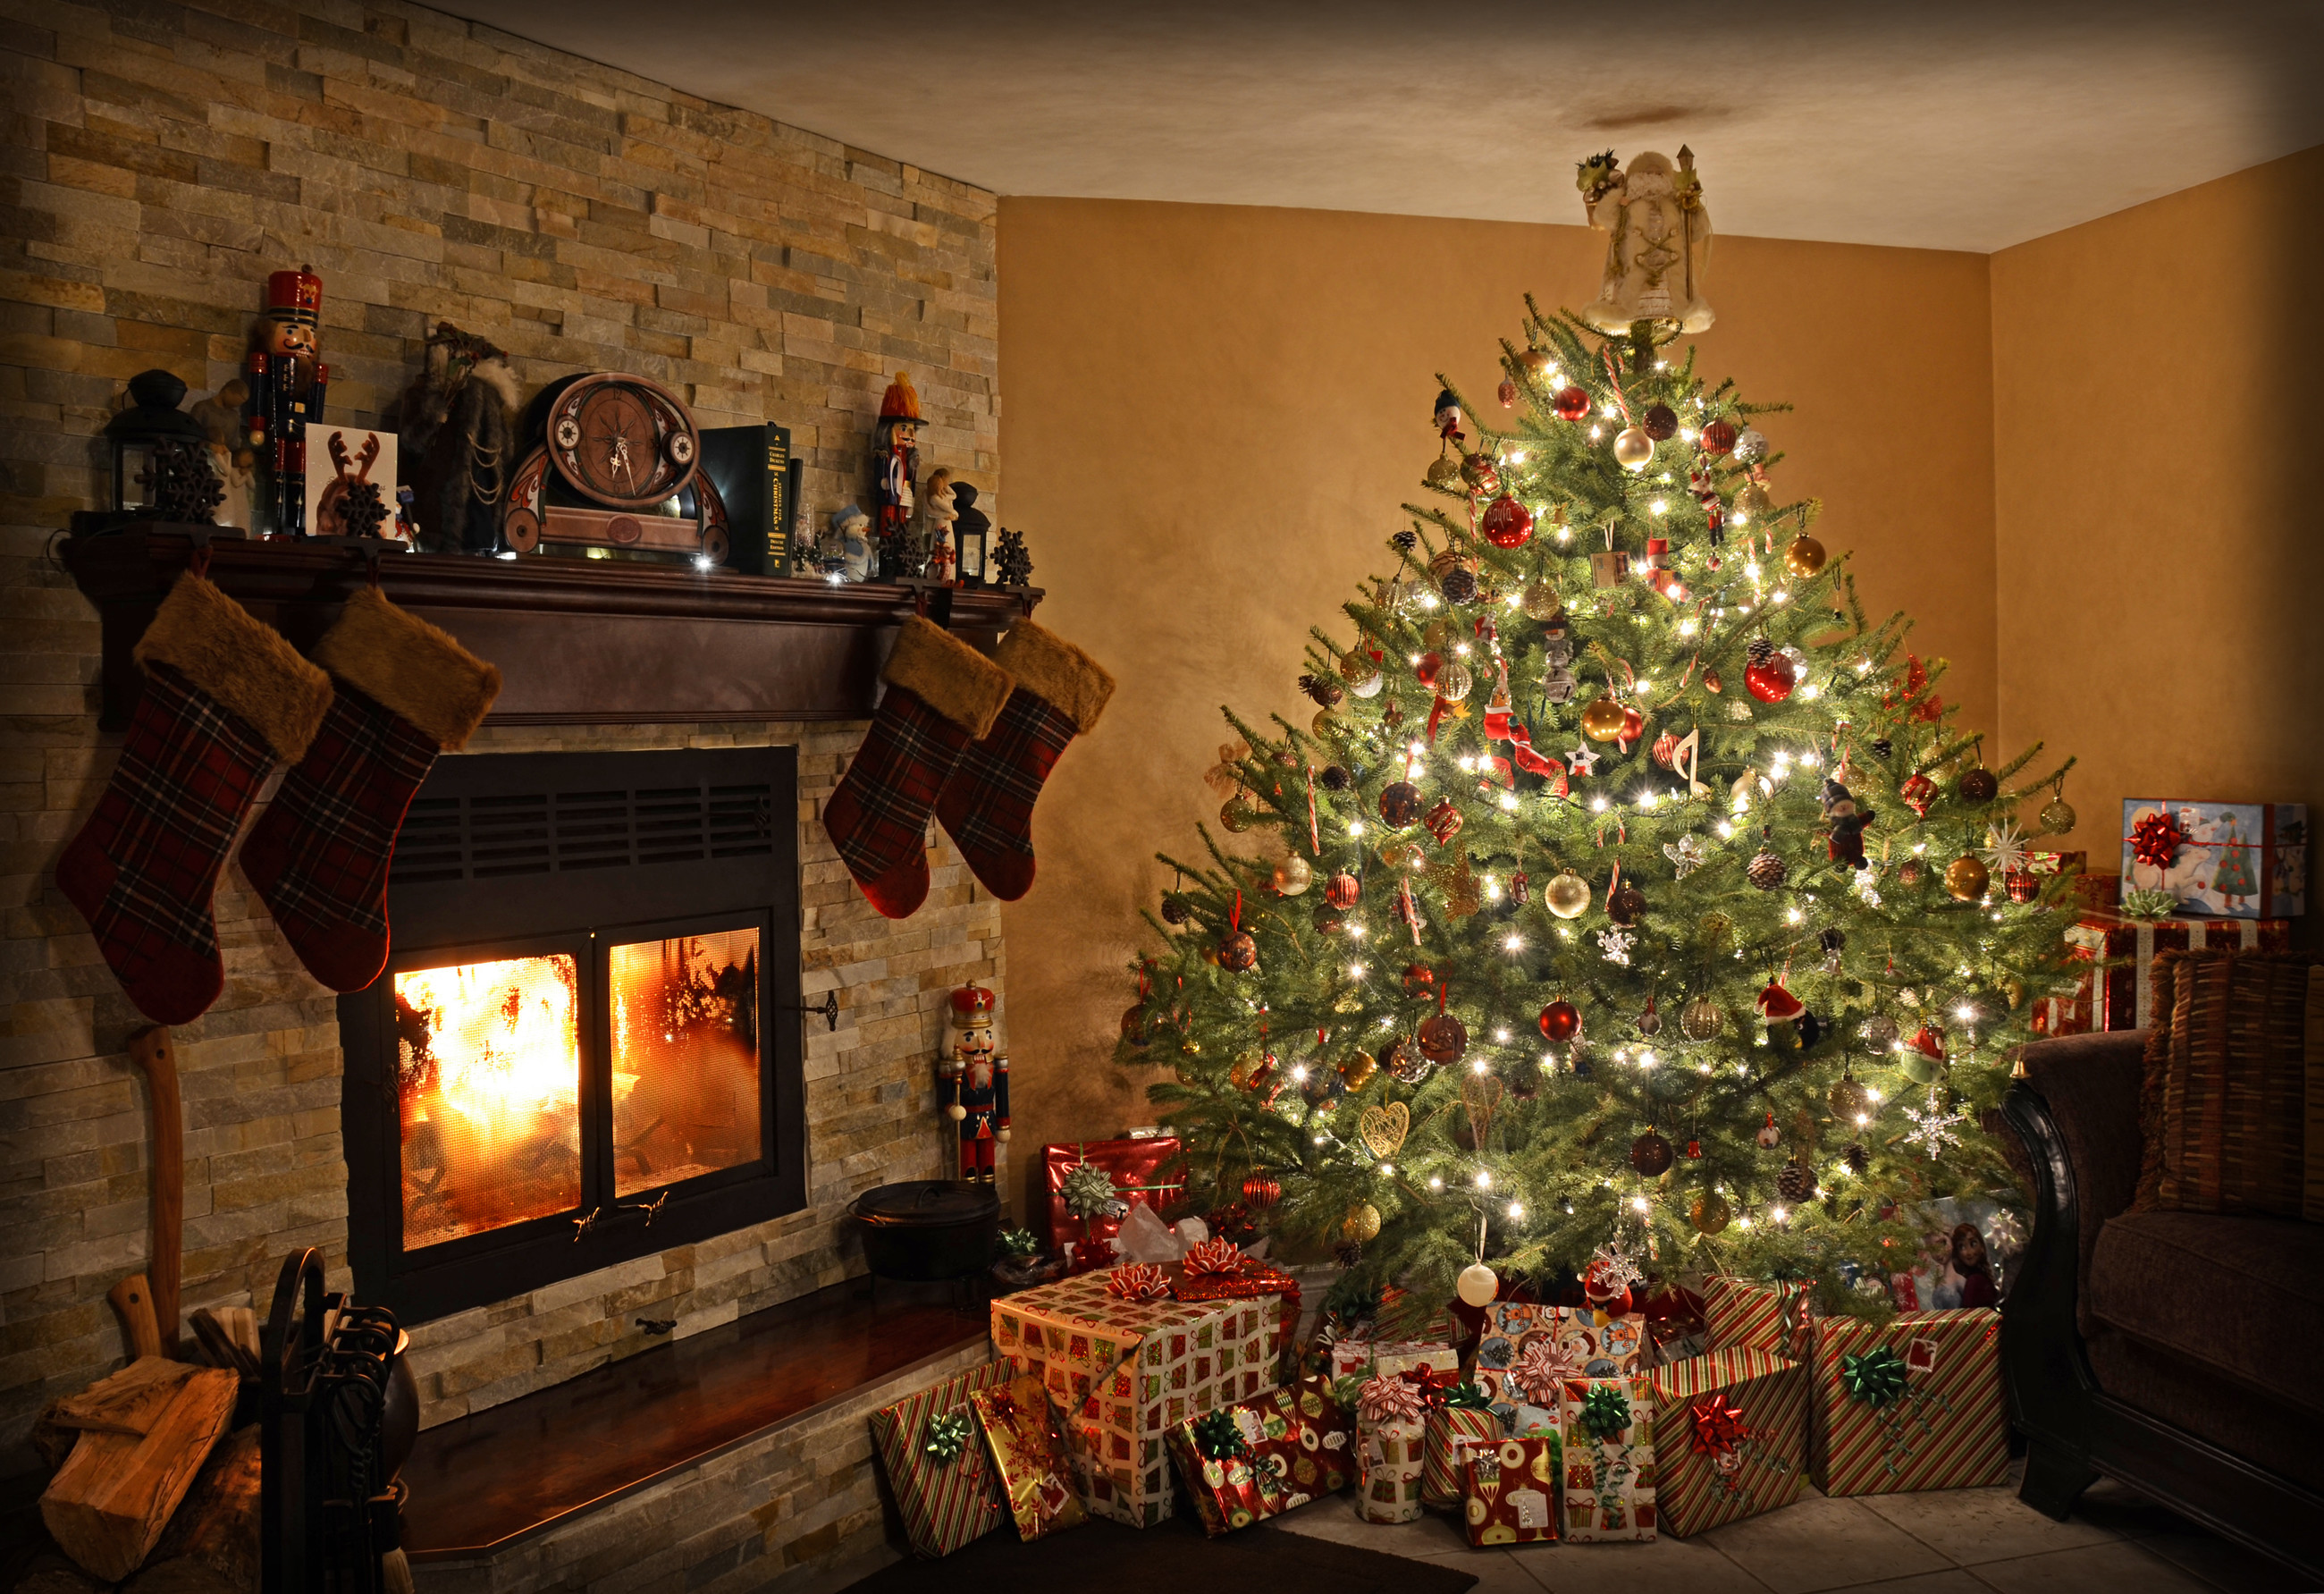 Christmas Fireplace Wallpaper 57 images 2600x1783